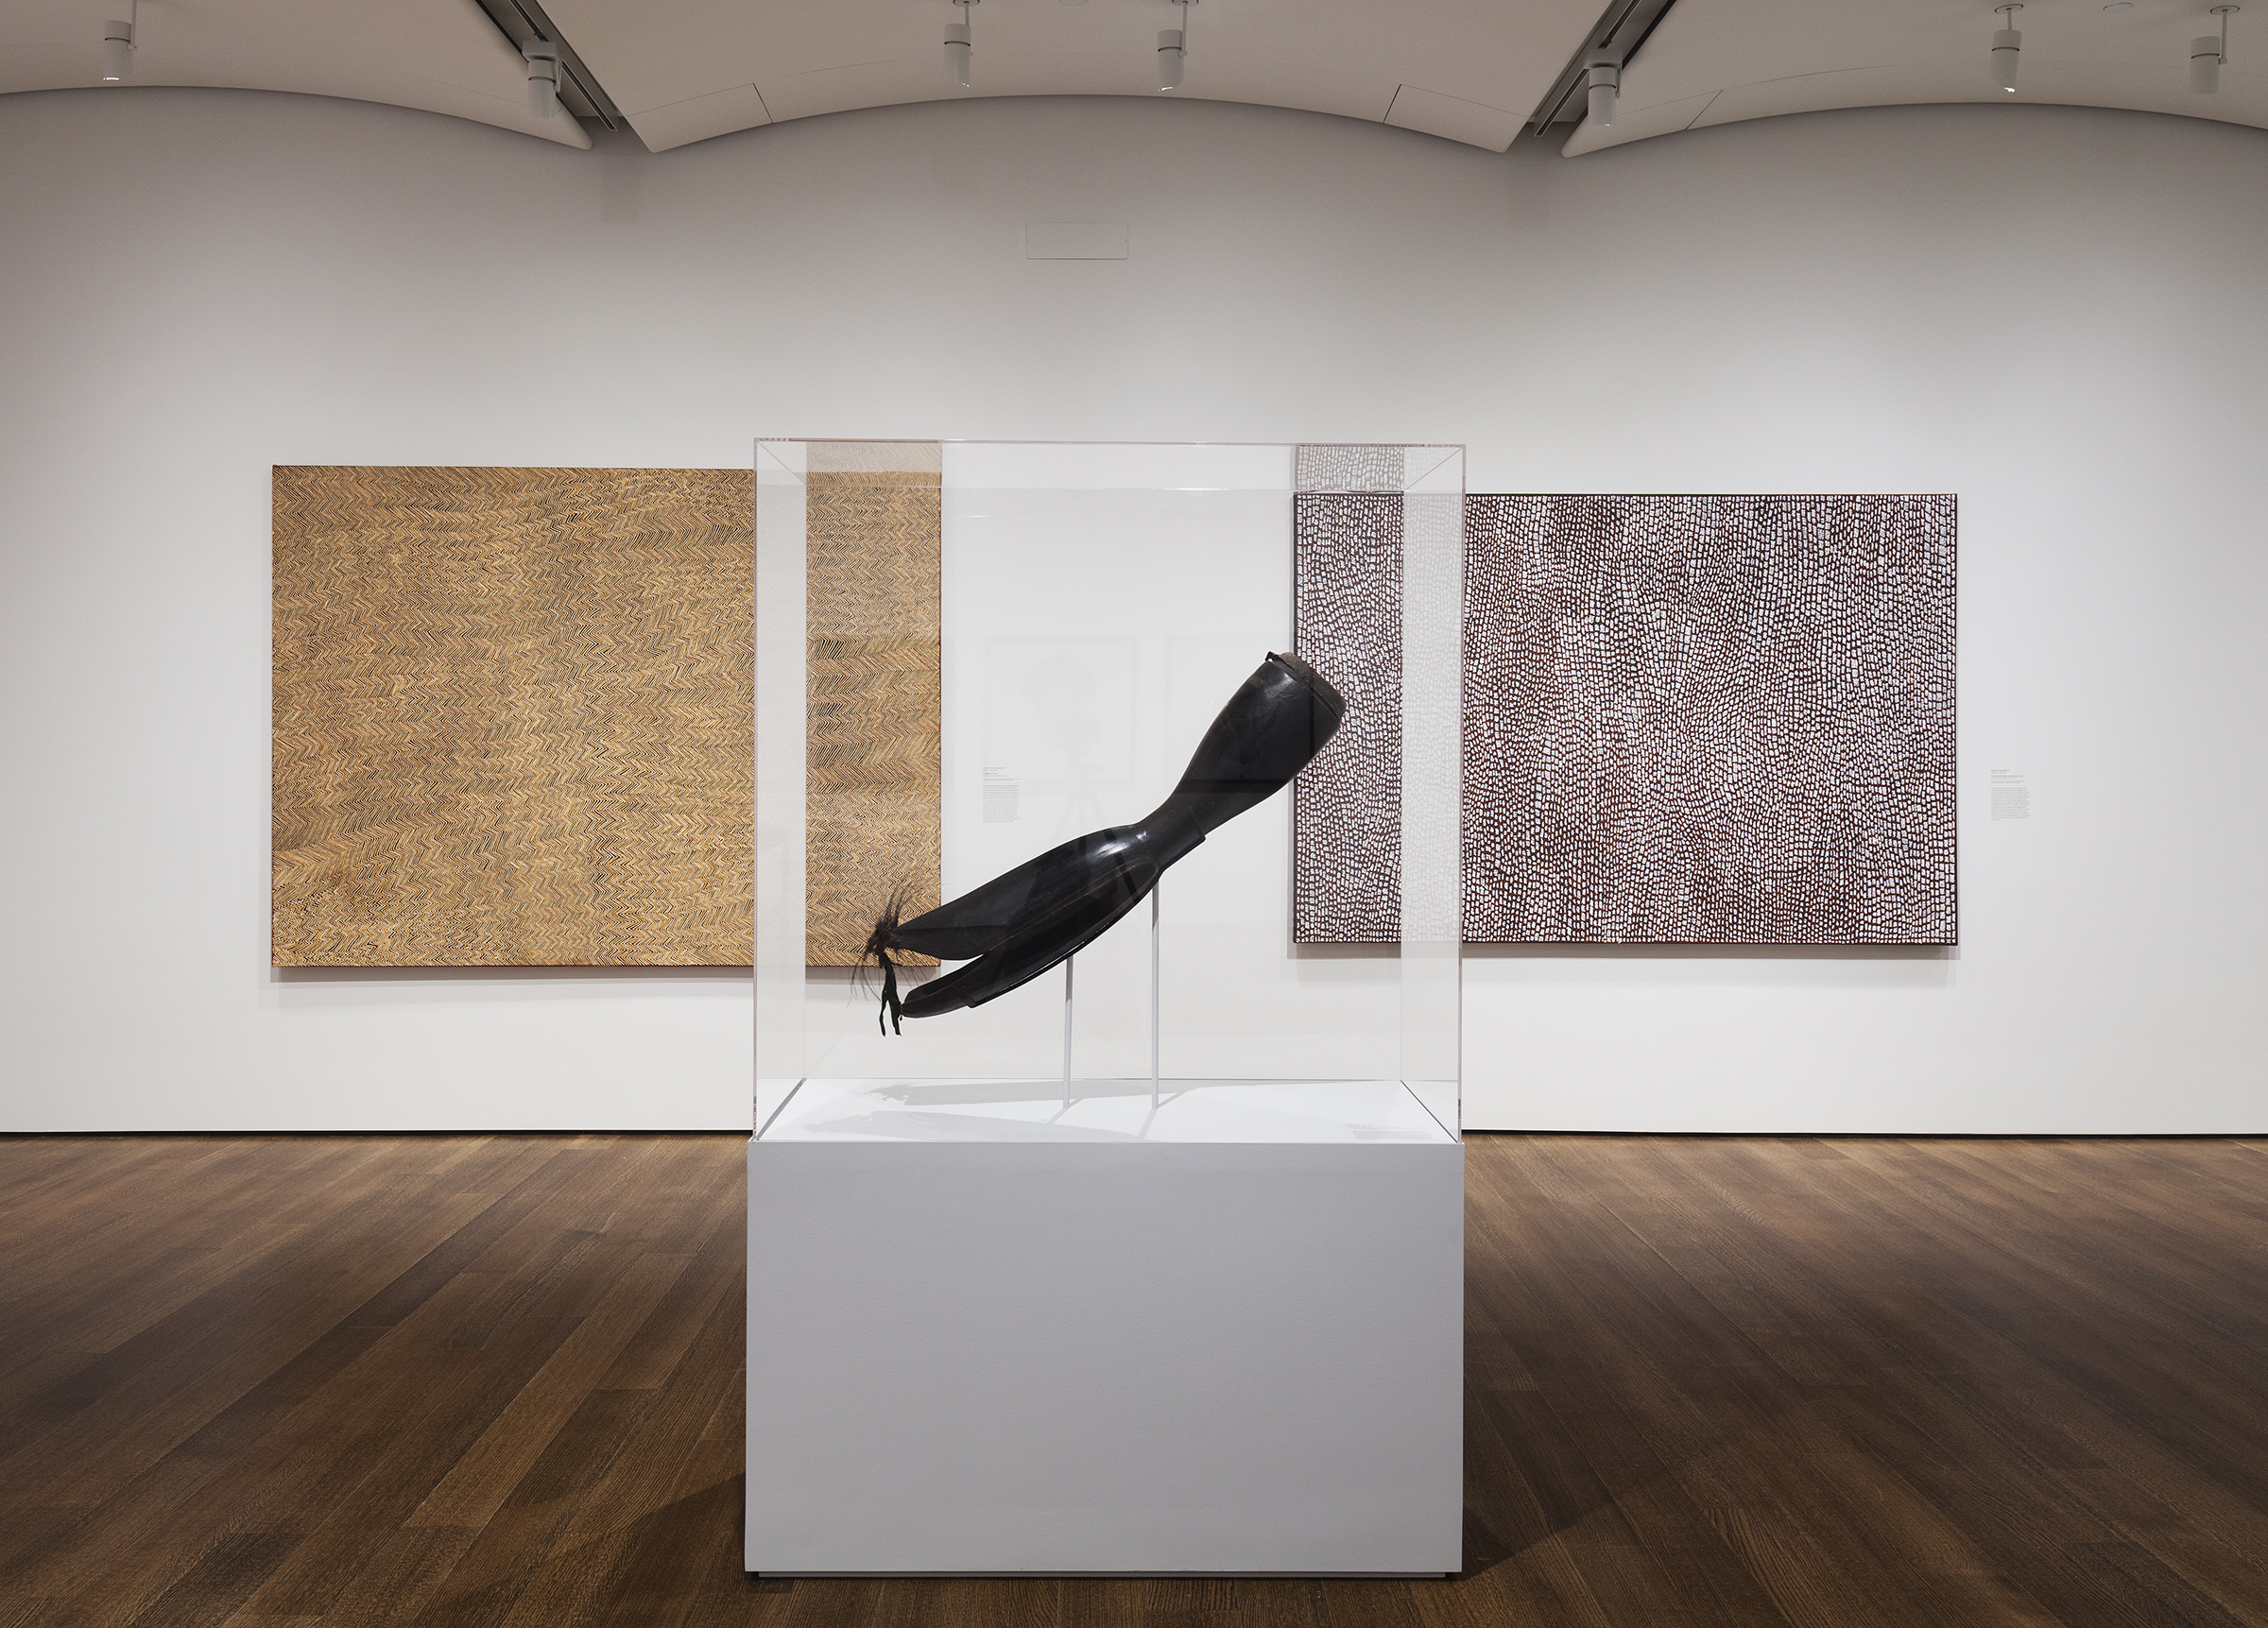 Exhibition gallery featuring large Warup drum in a glass case centered in the foreground. Behind the drum on the wall are two large scale white and brown abstract paintings by Australian indigenous artists.